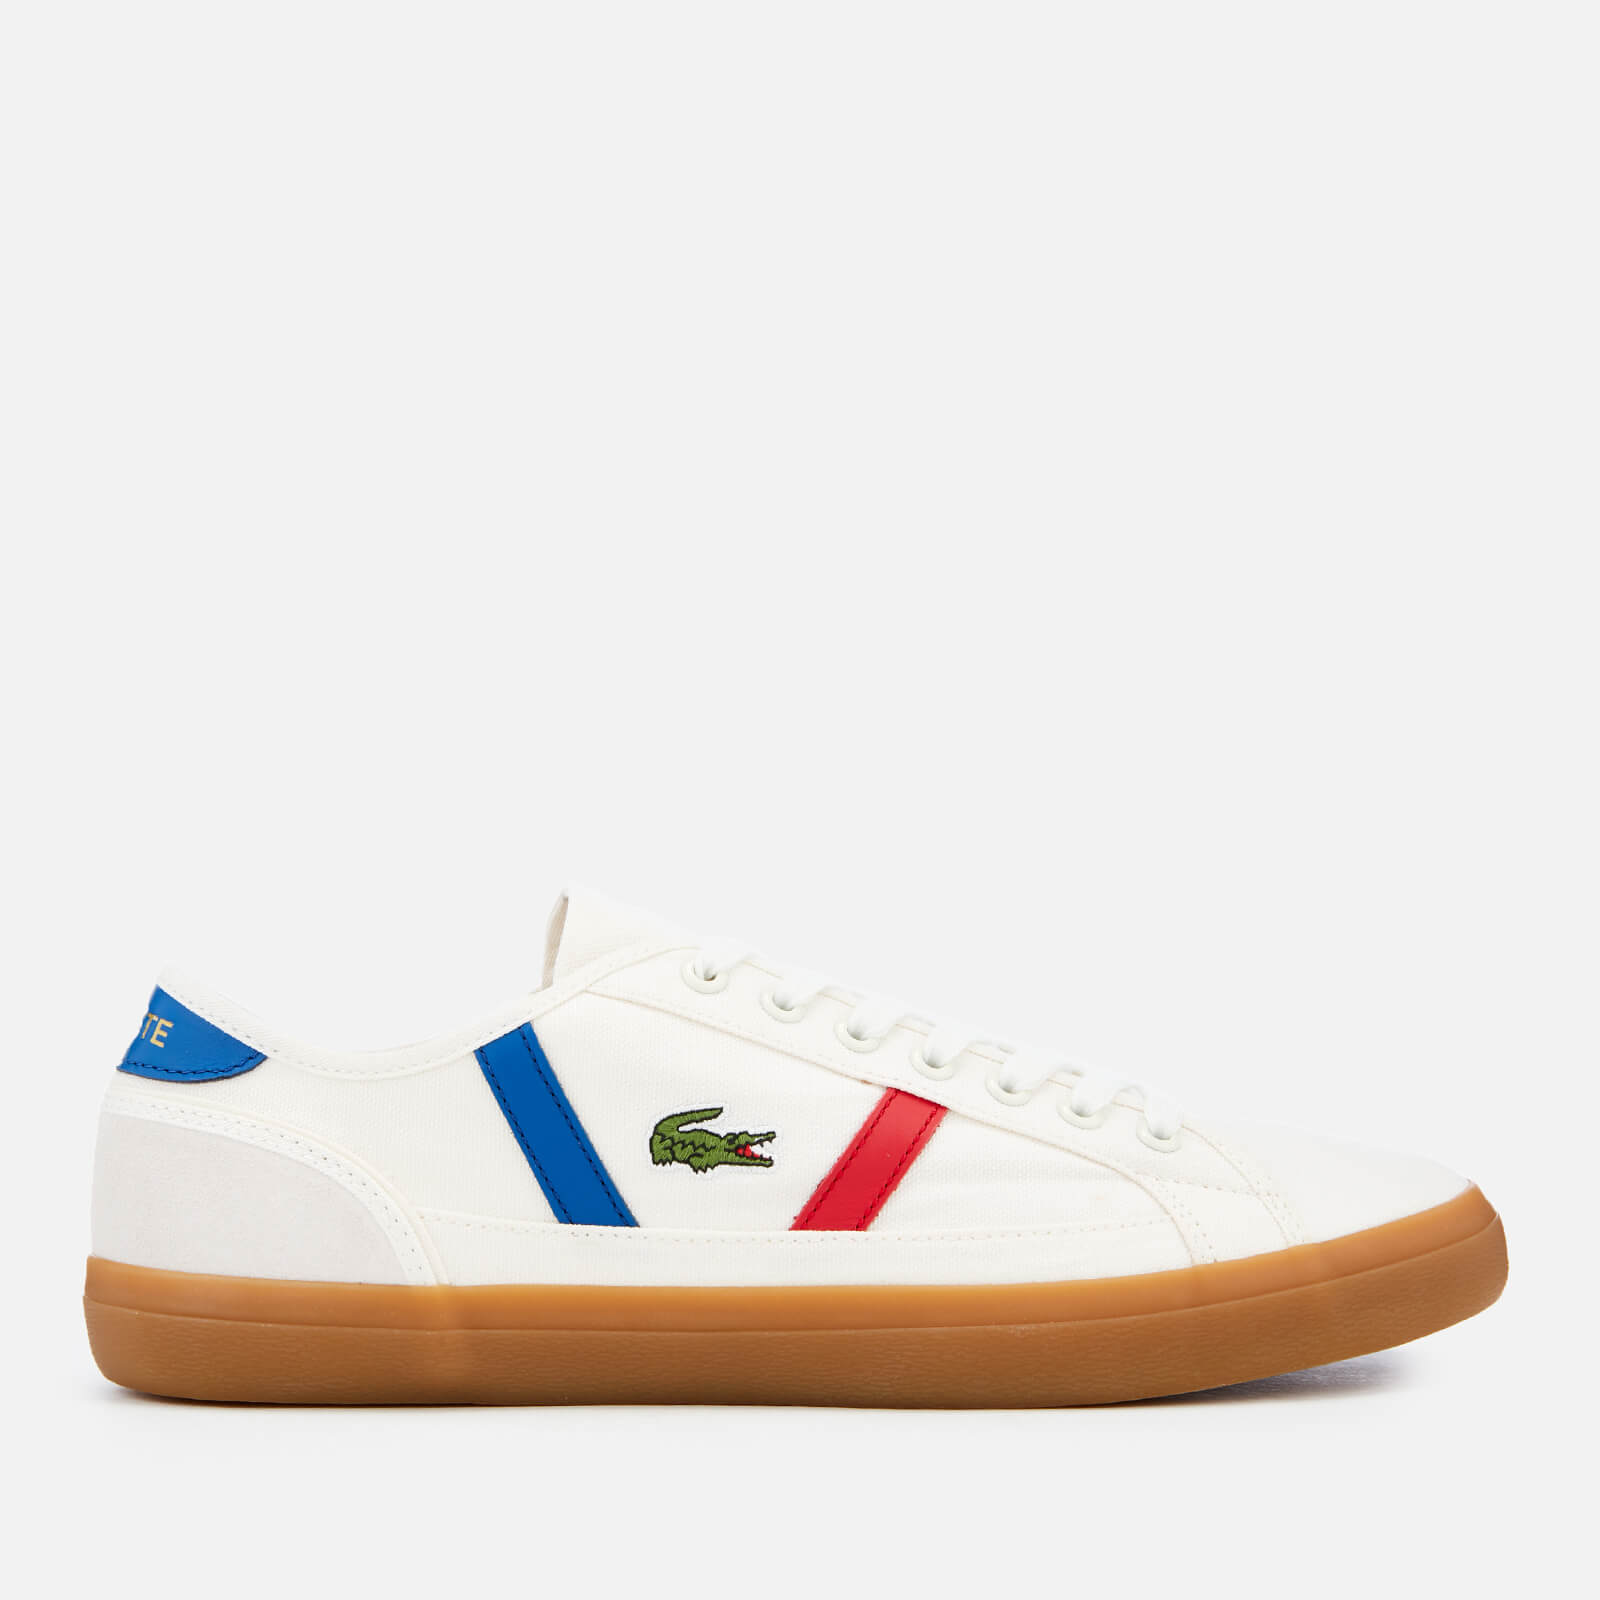 545a56582f89 Lacoste Men s Sideline 119 2 Canvas Trainers - Off White Gum